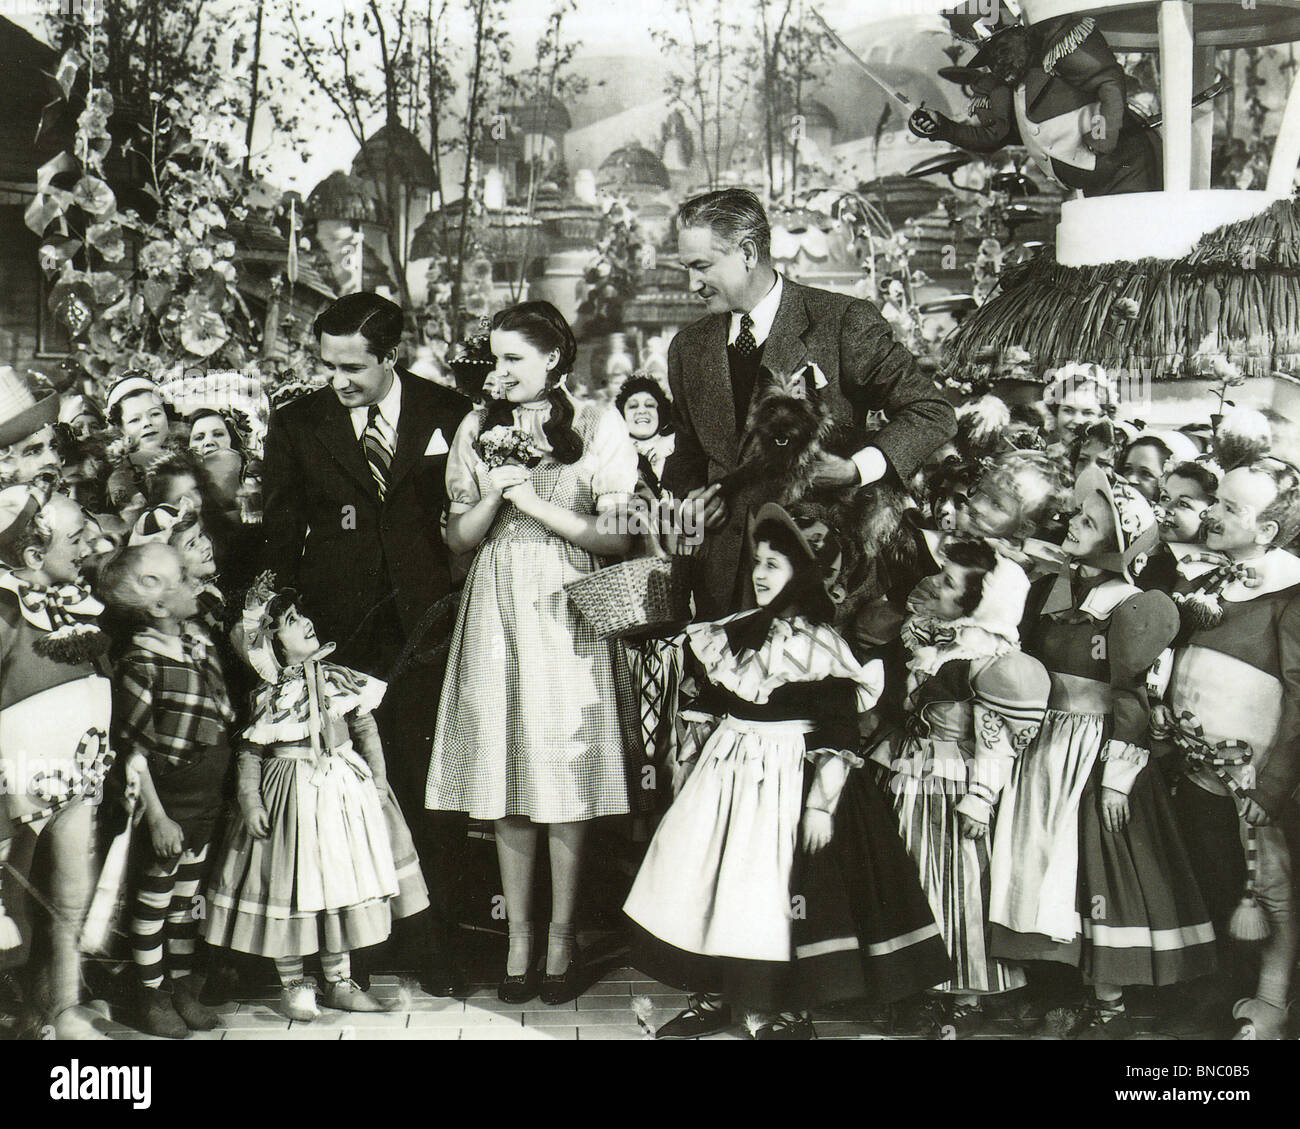 THE WIZARD OF OZ  I939 MGM film - Stock Image